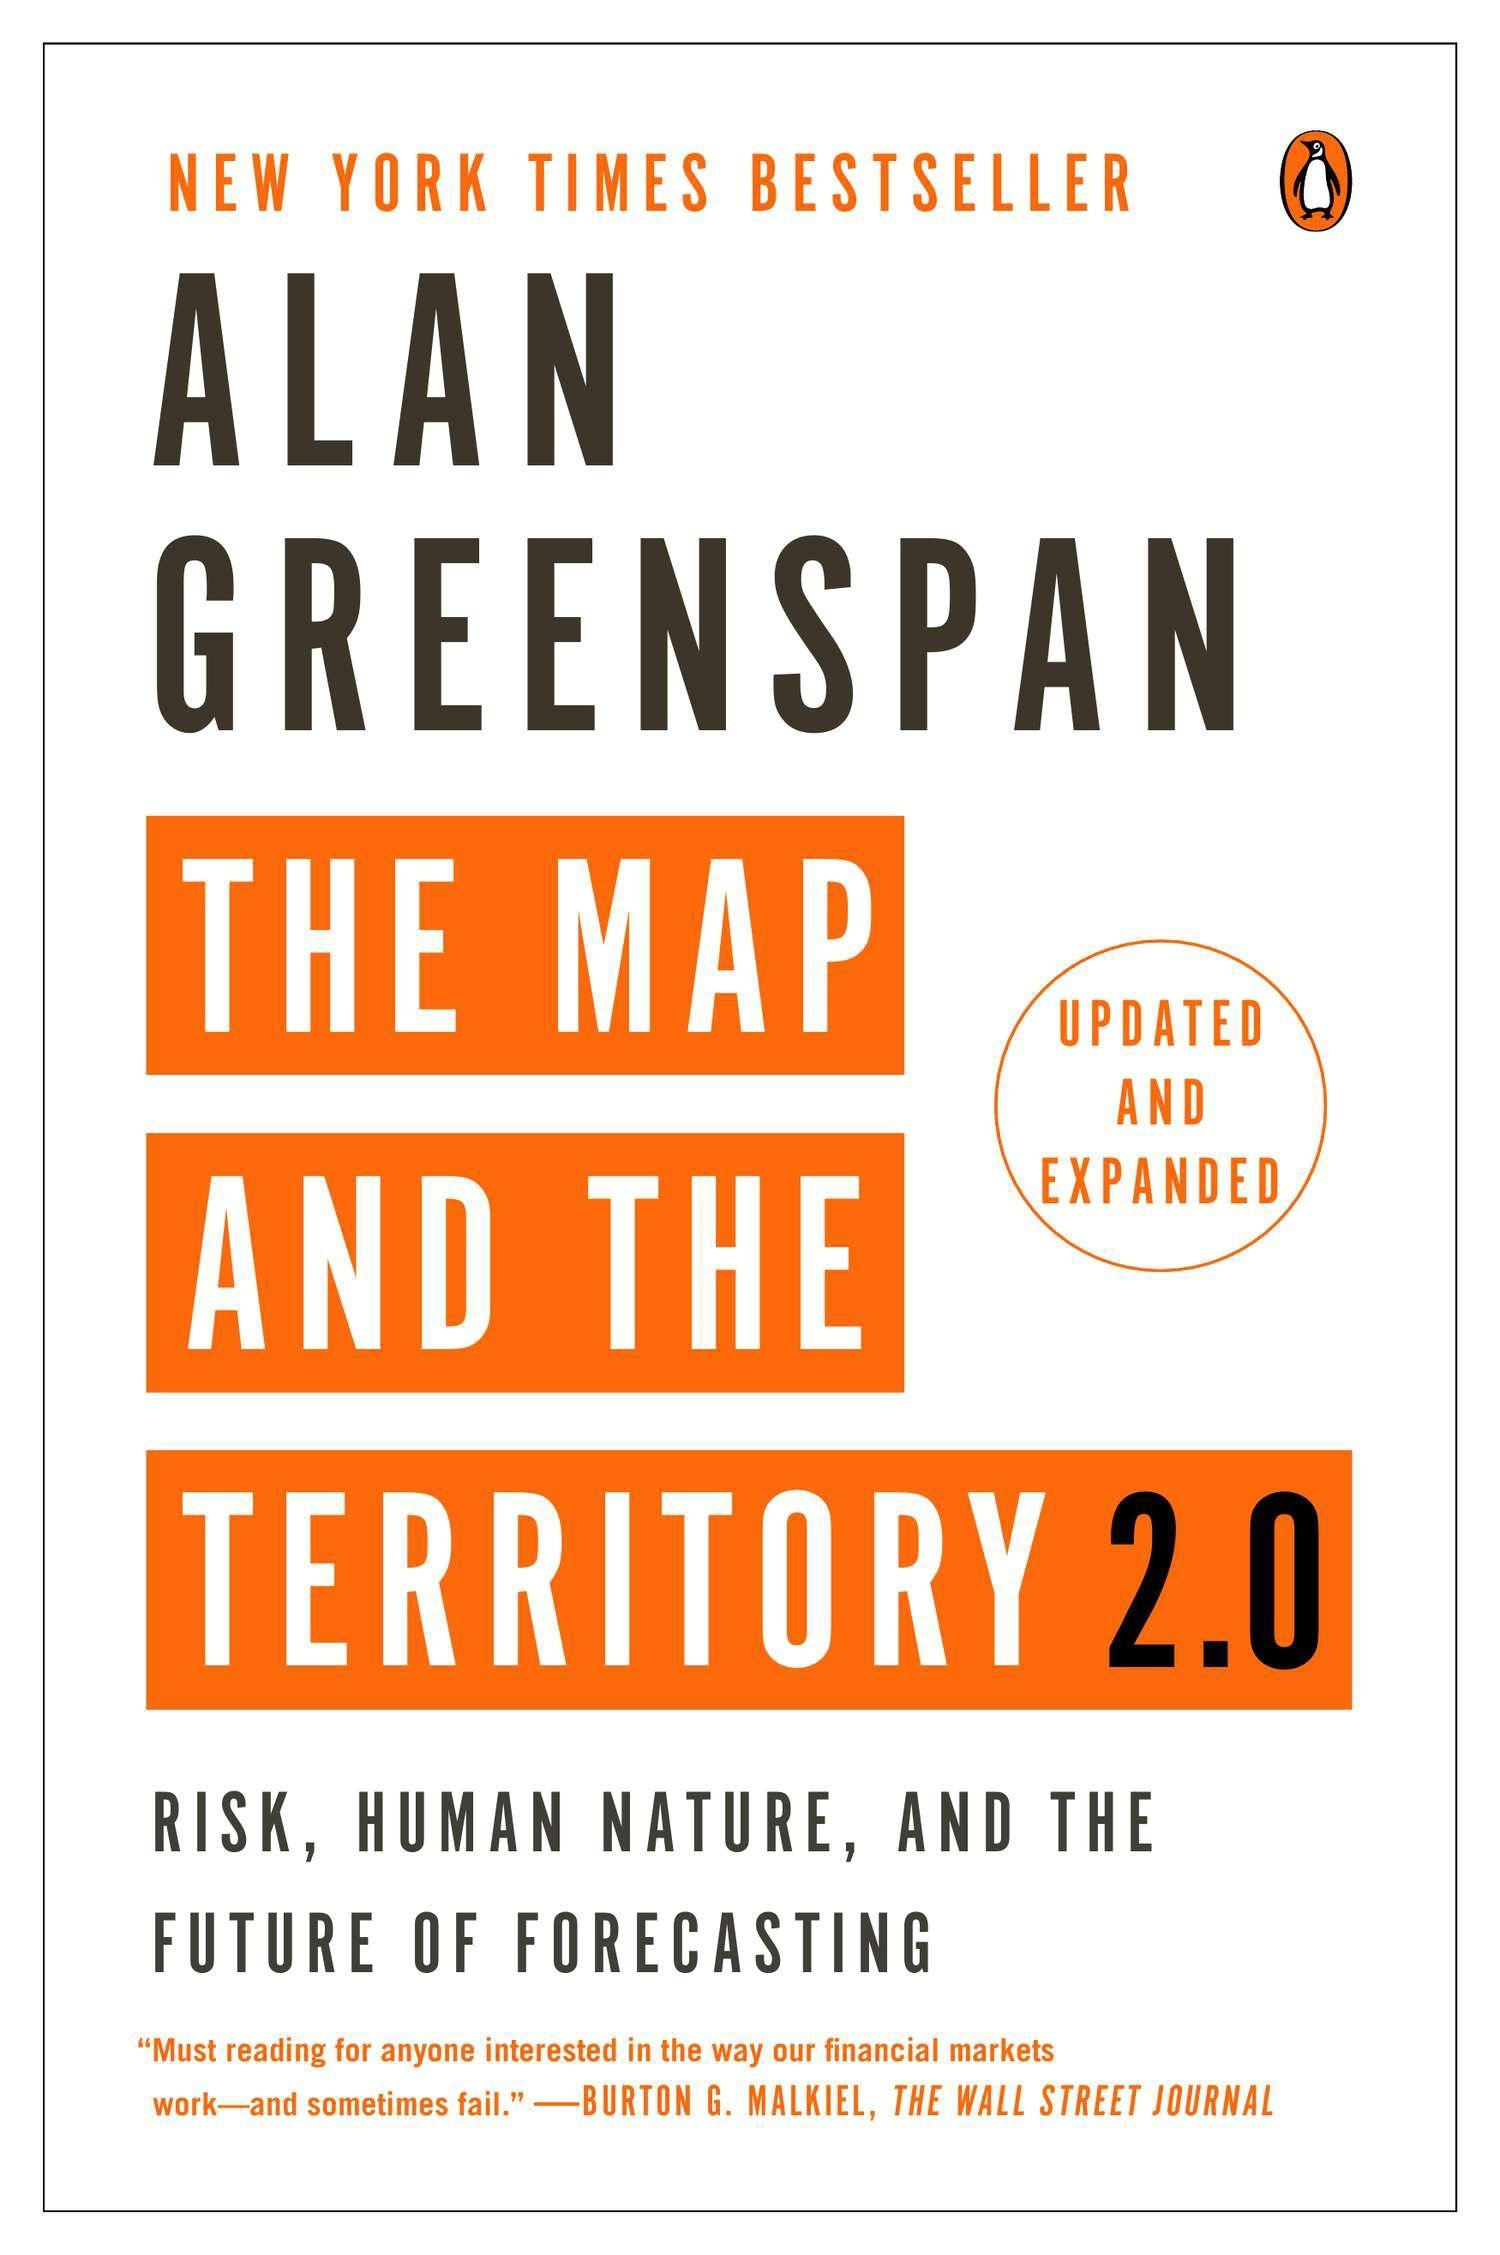 The Map And The Territory 20 Risk, Human Nature, And